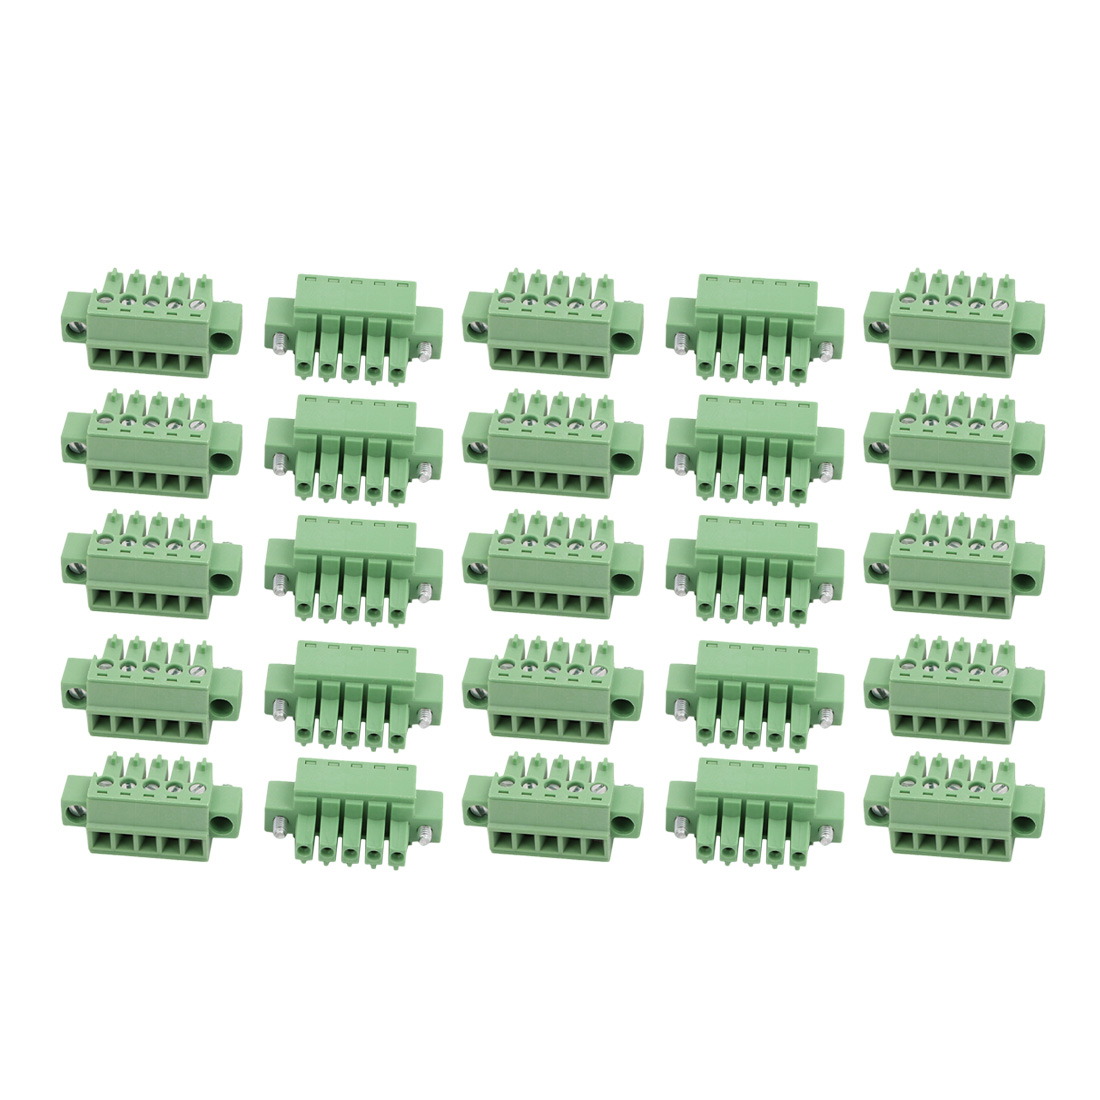 25Pcs 3.81mm Pitch 5 Positions Terminal Block Wire Connection for PCB Mounting